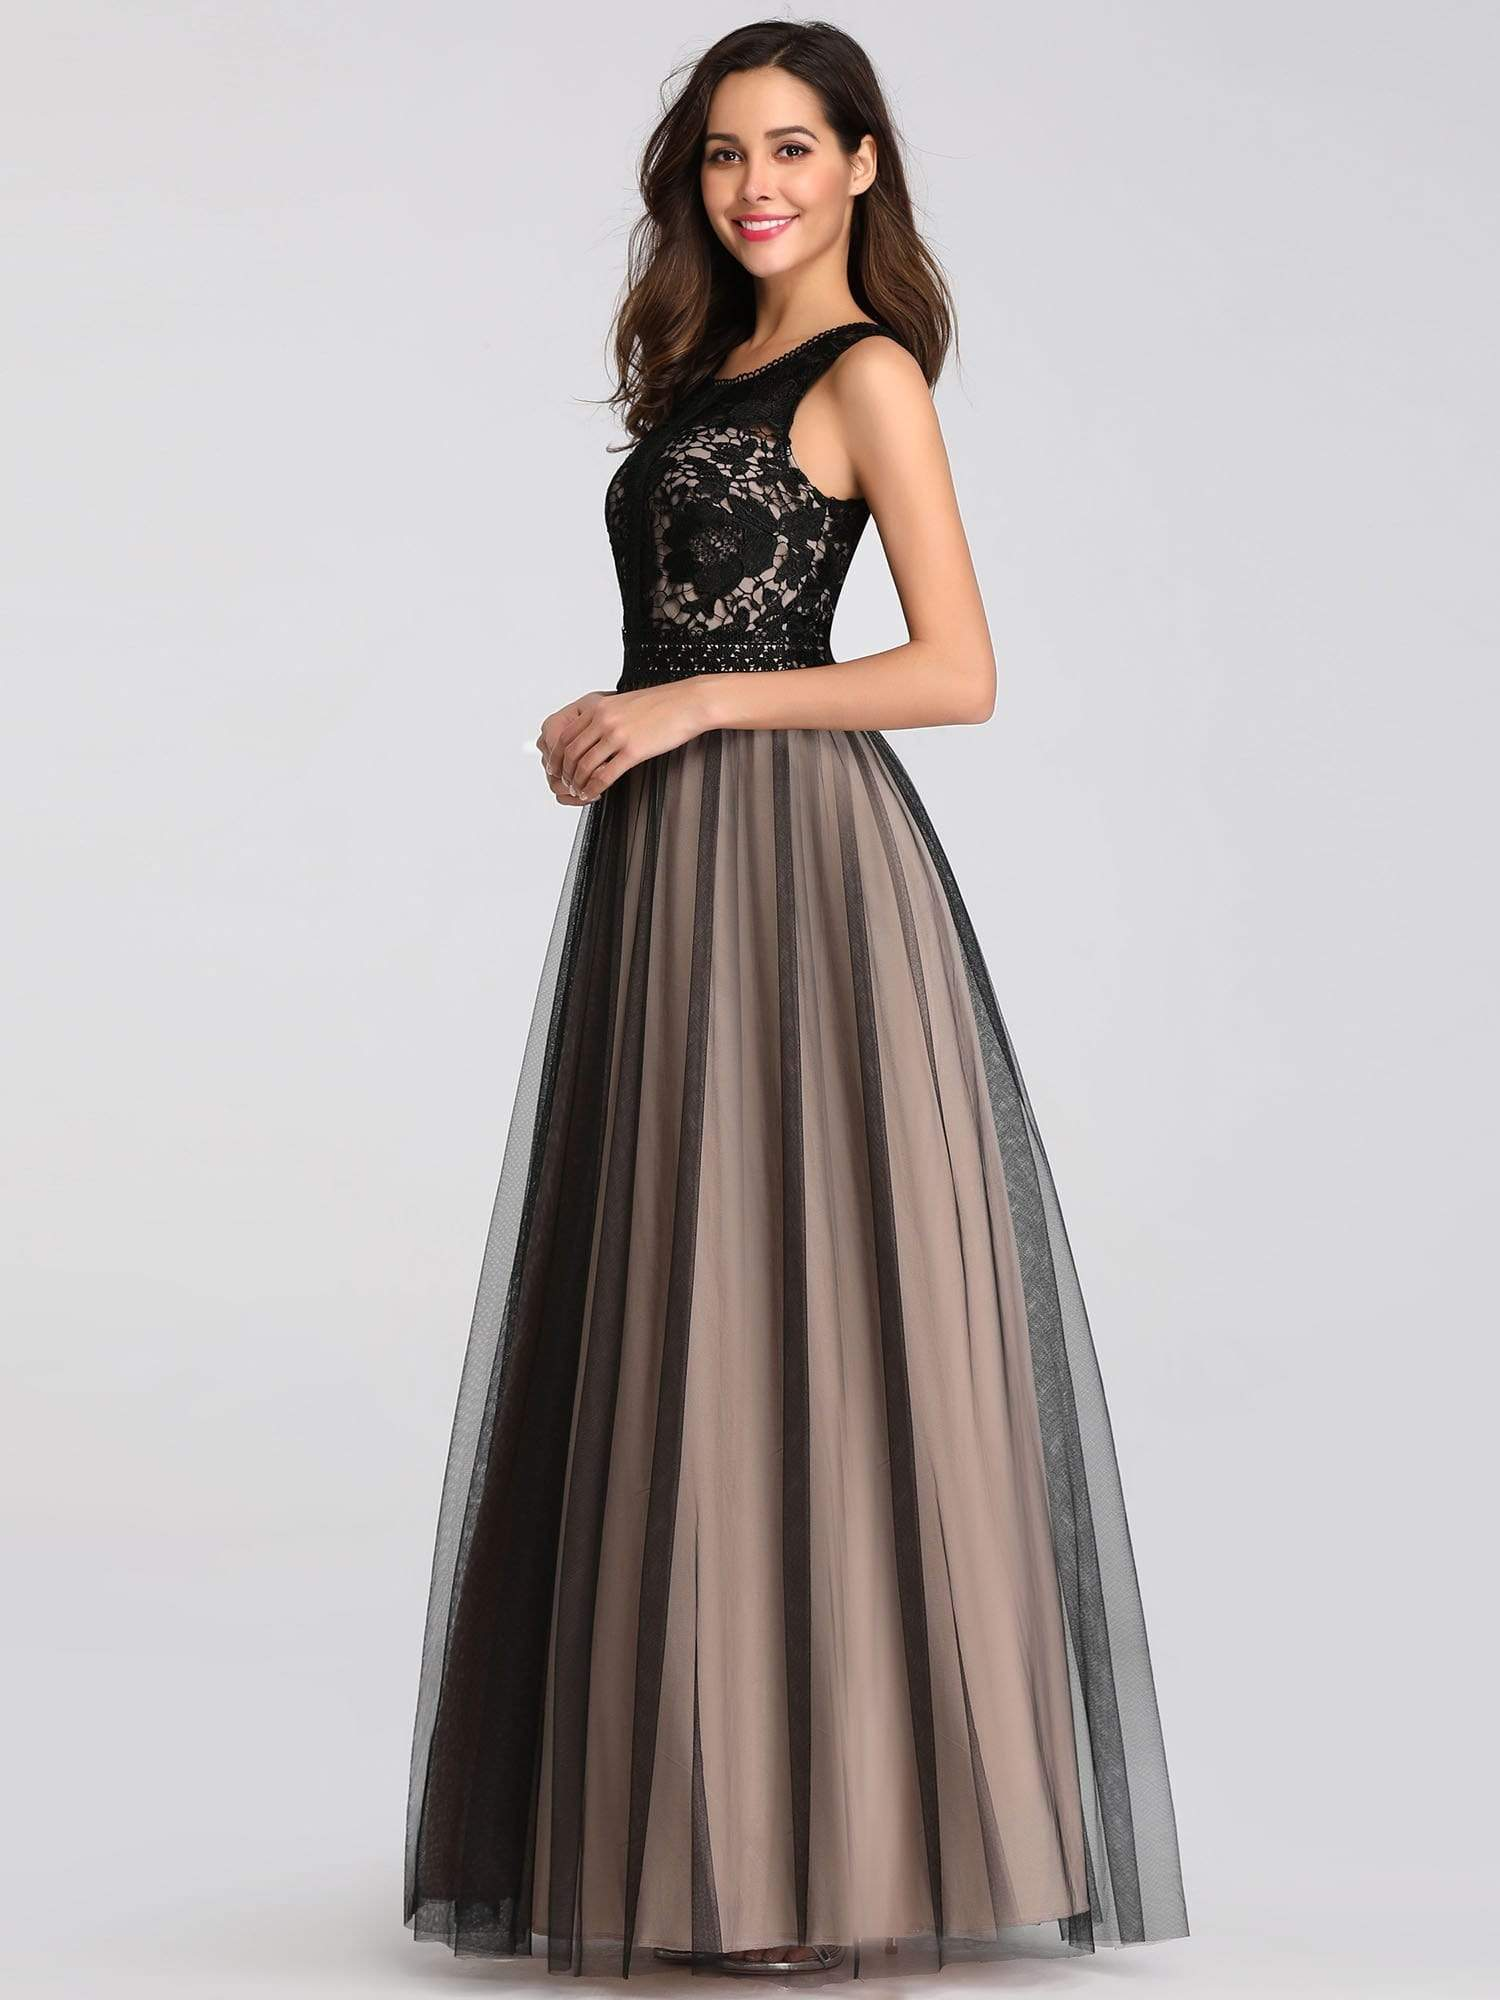 Prom Dresses for Women Maxi Long A Line